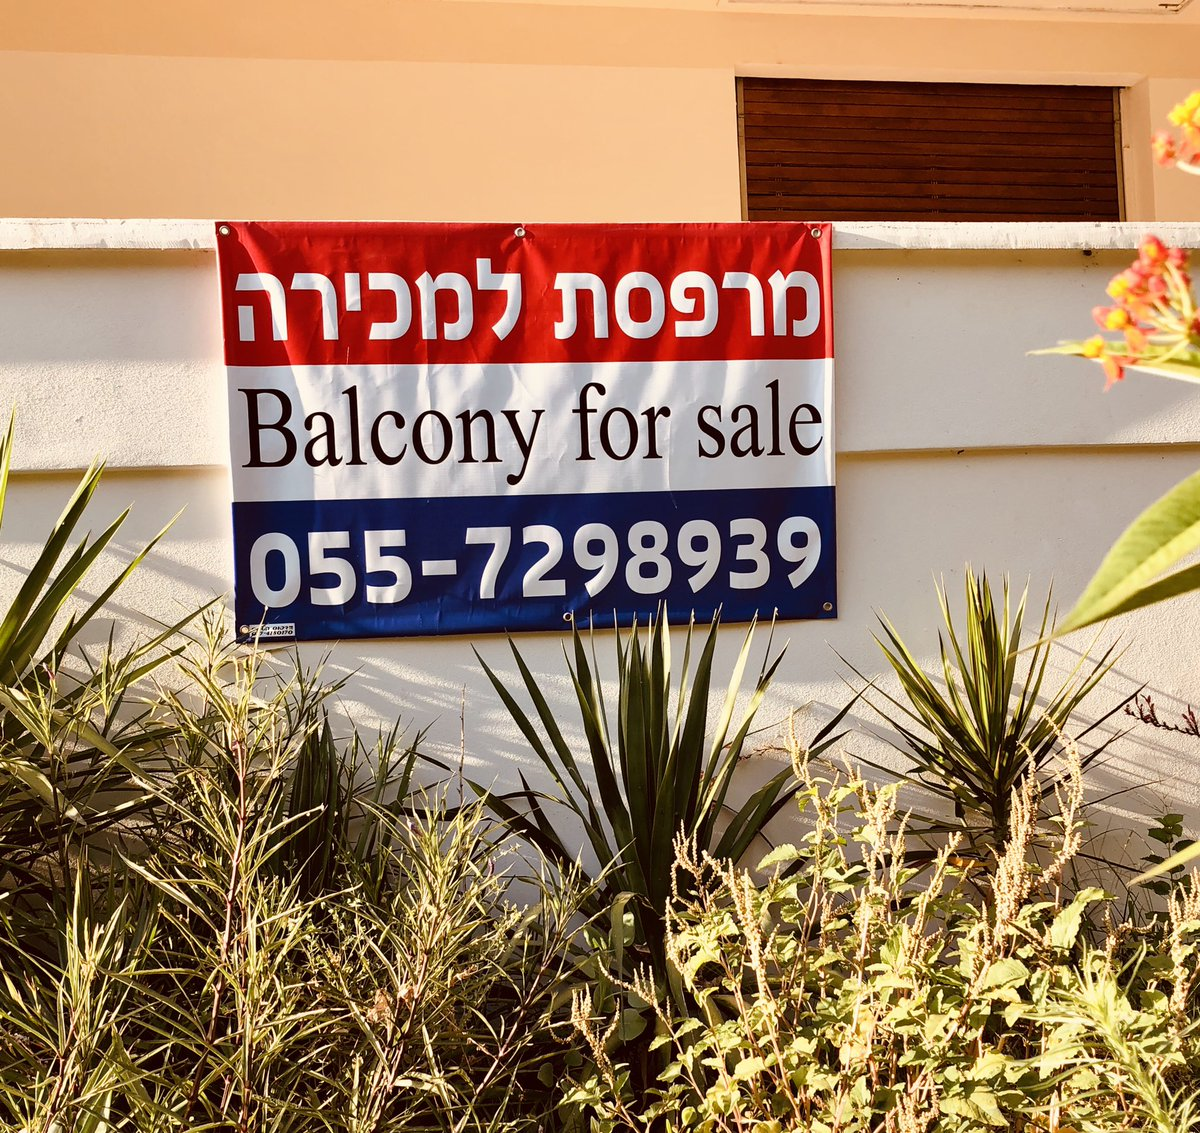 #TelAviv city, where you can buy the balcony but don't get access to the attached apartment  pic.twitter.com/rxSdlZSAvN